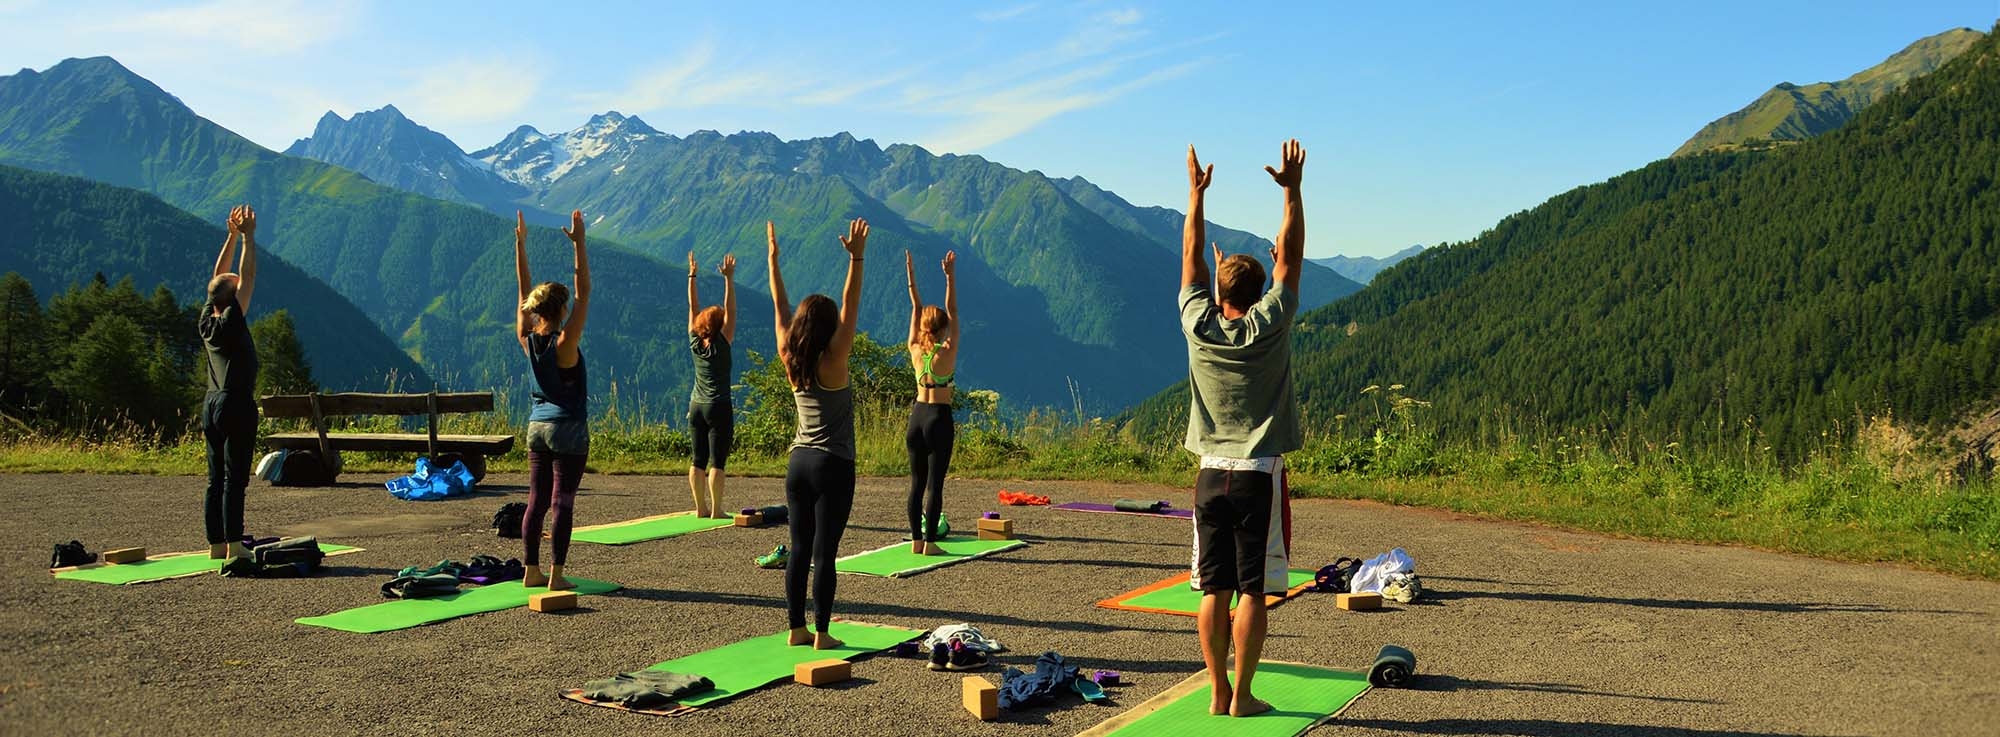 Yoga and hiking holiday in Austria